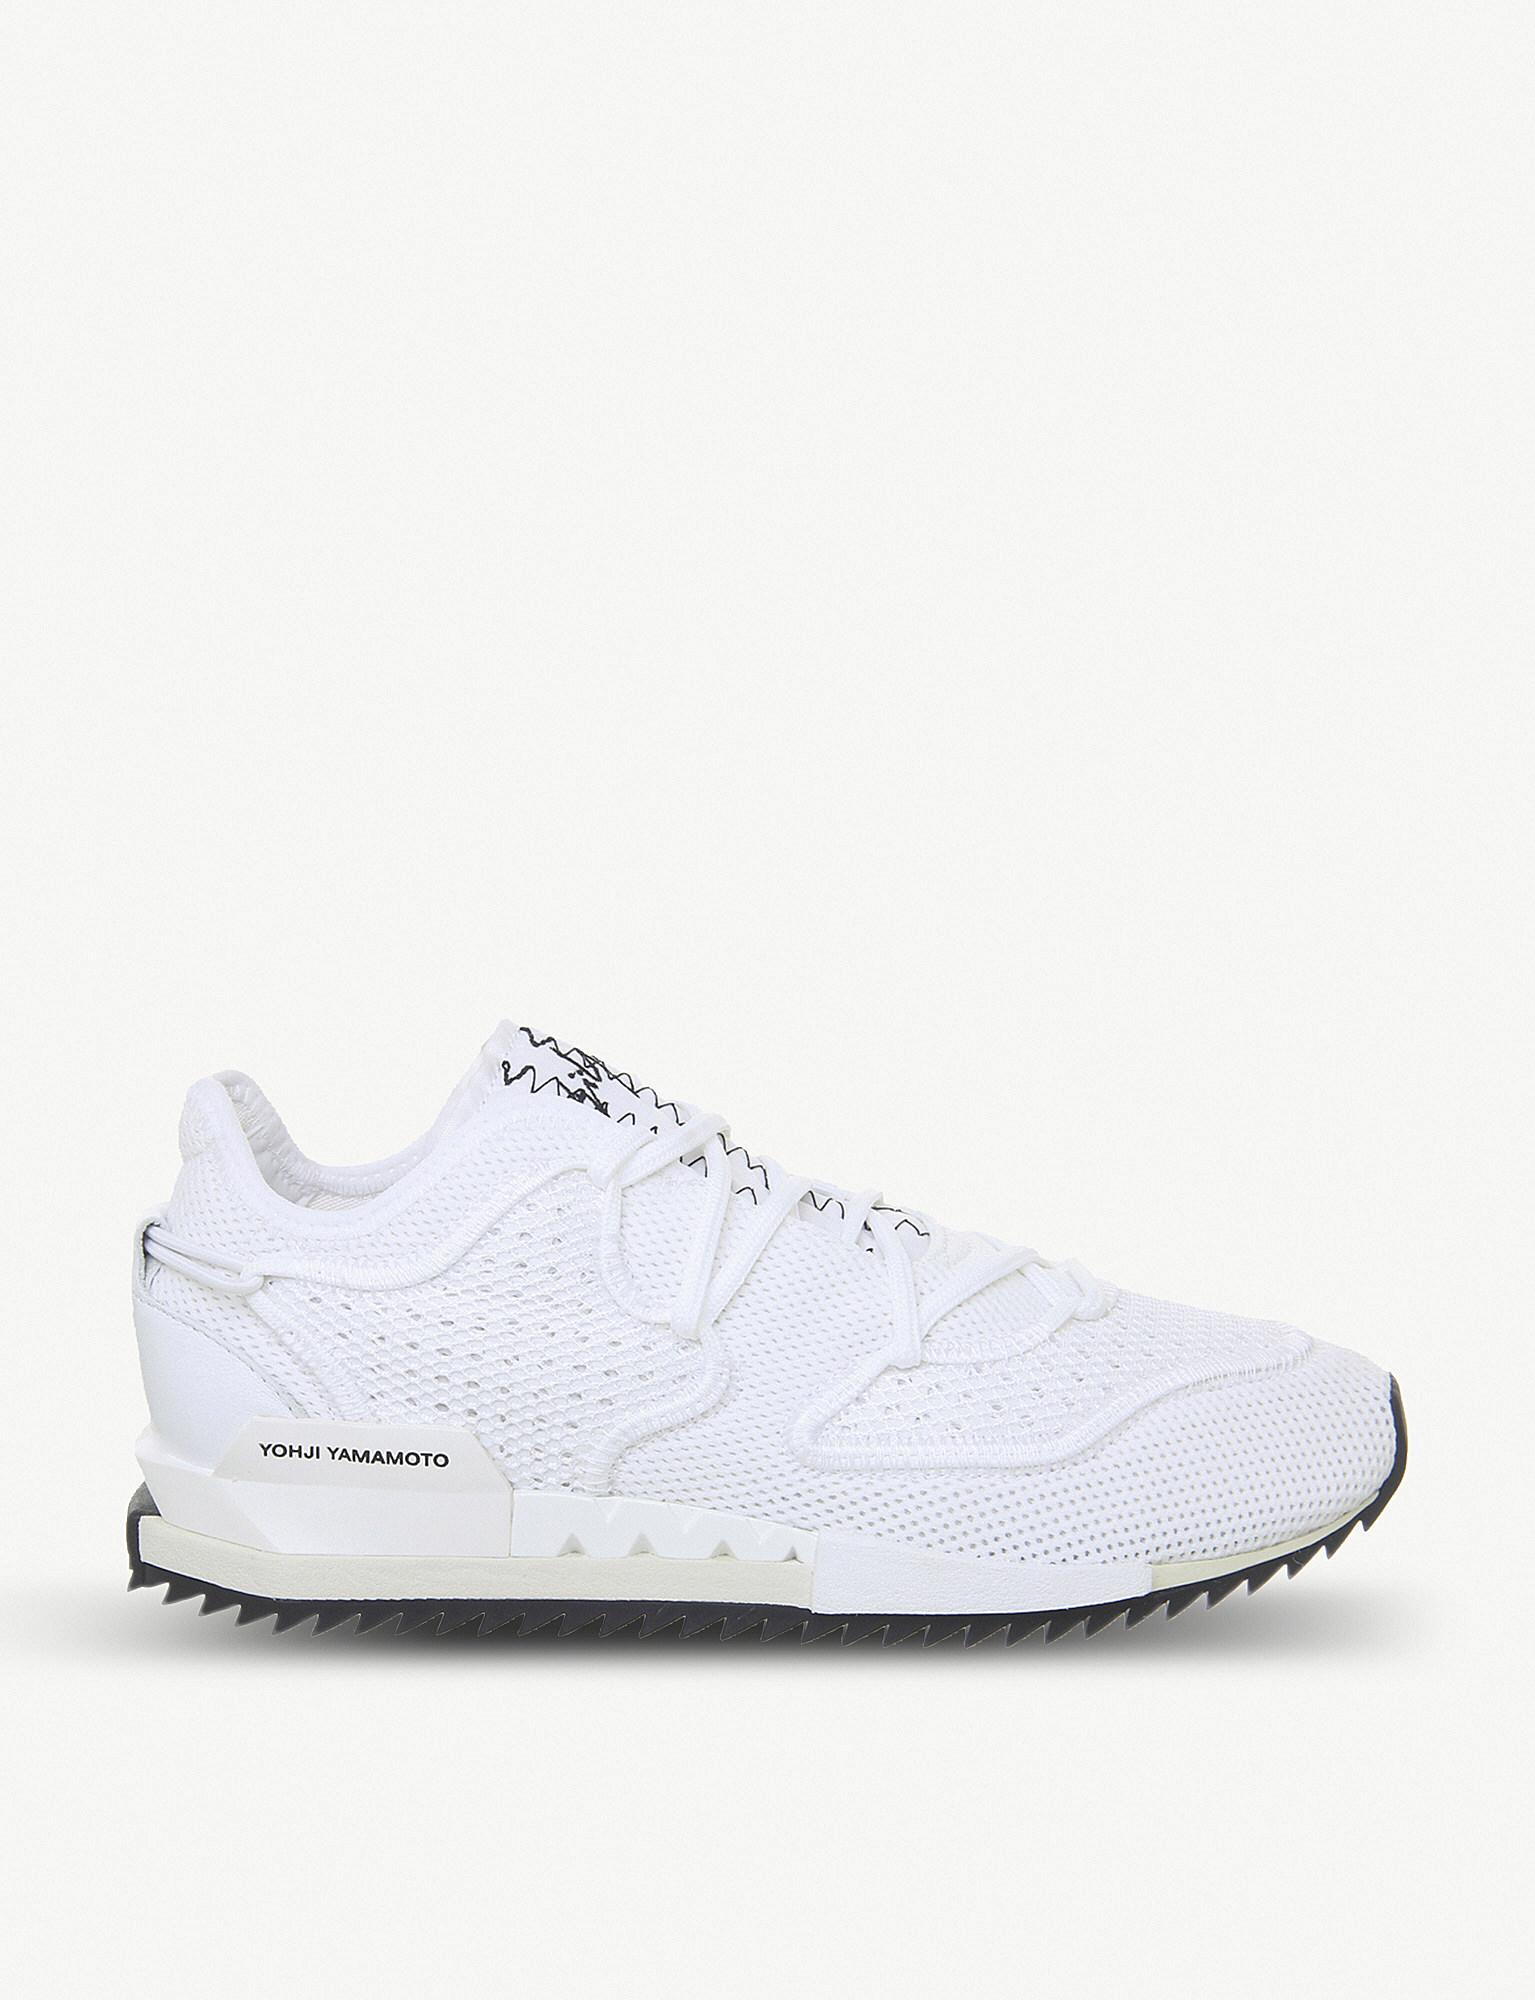 d8403d305 Y-3 Harigane Ii Primeknit Trainers in White for Men - Lyst